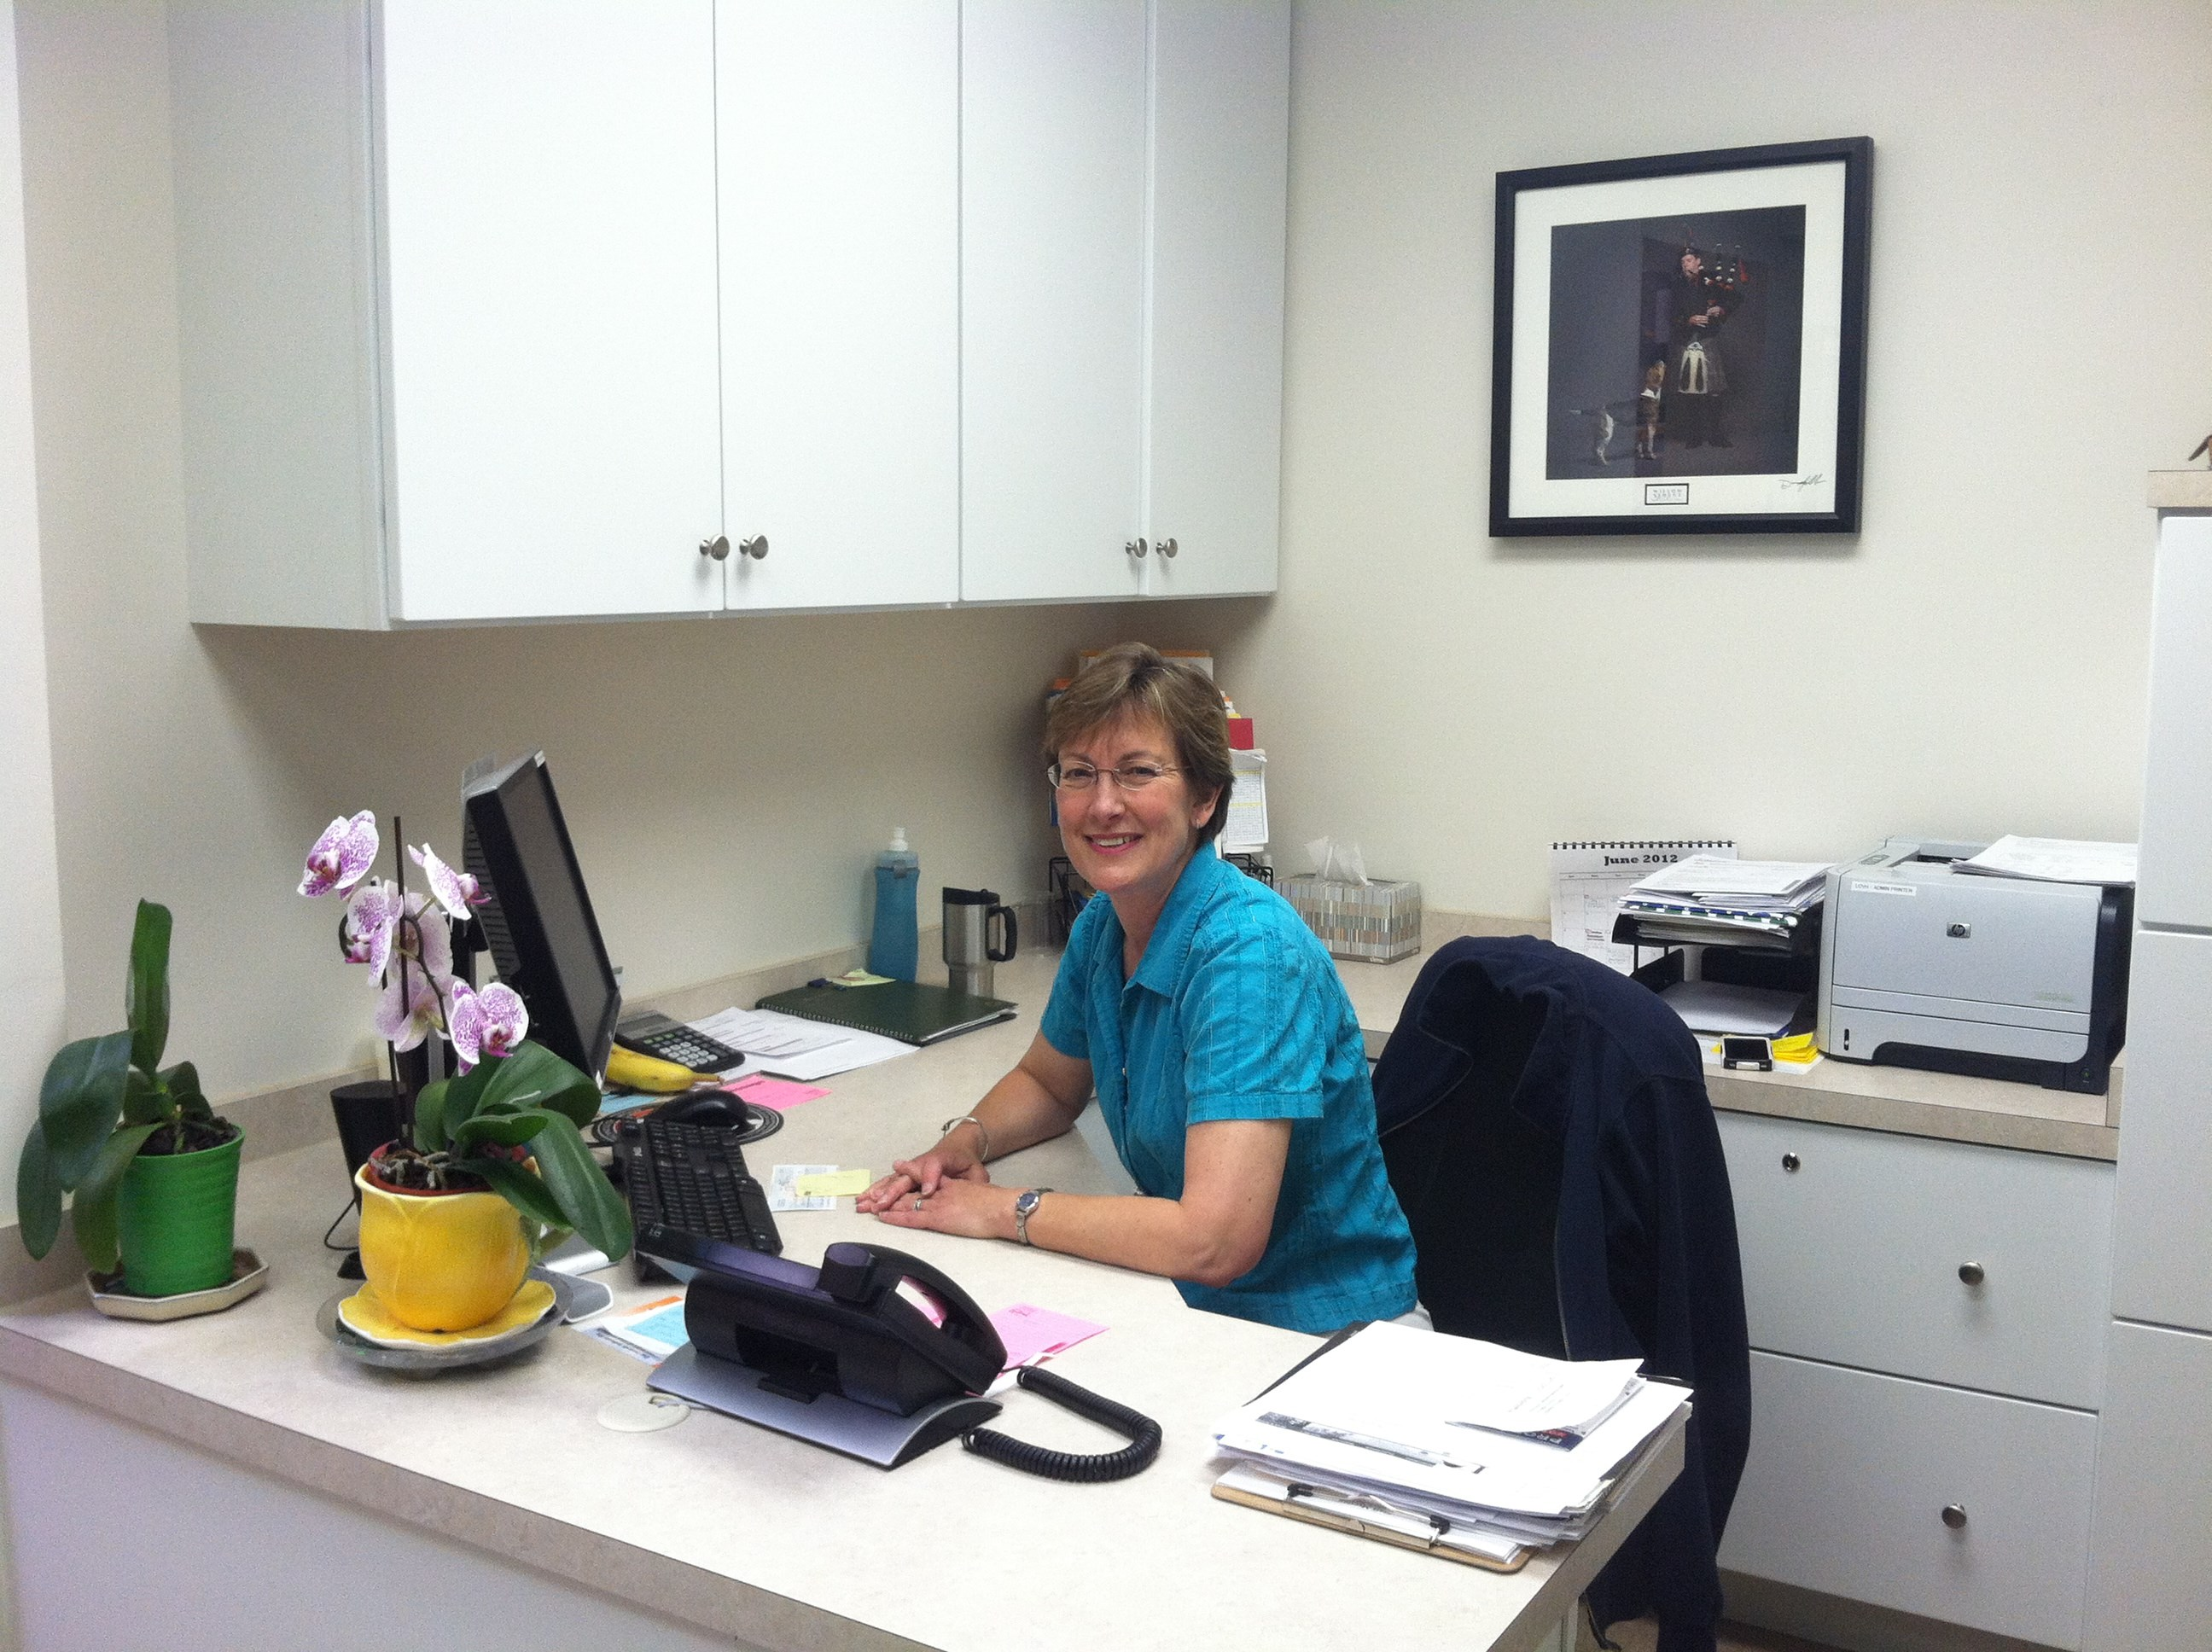 Sharon Wendelgass, Hospital Administrator